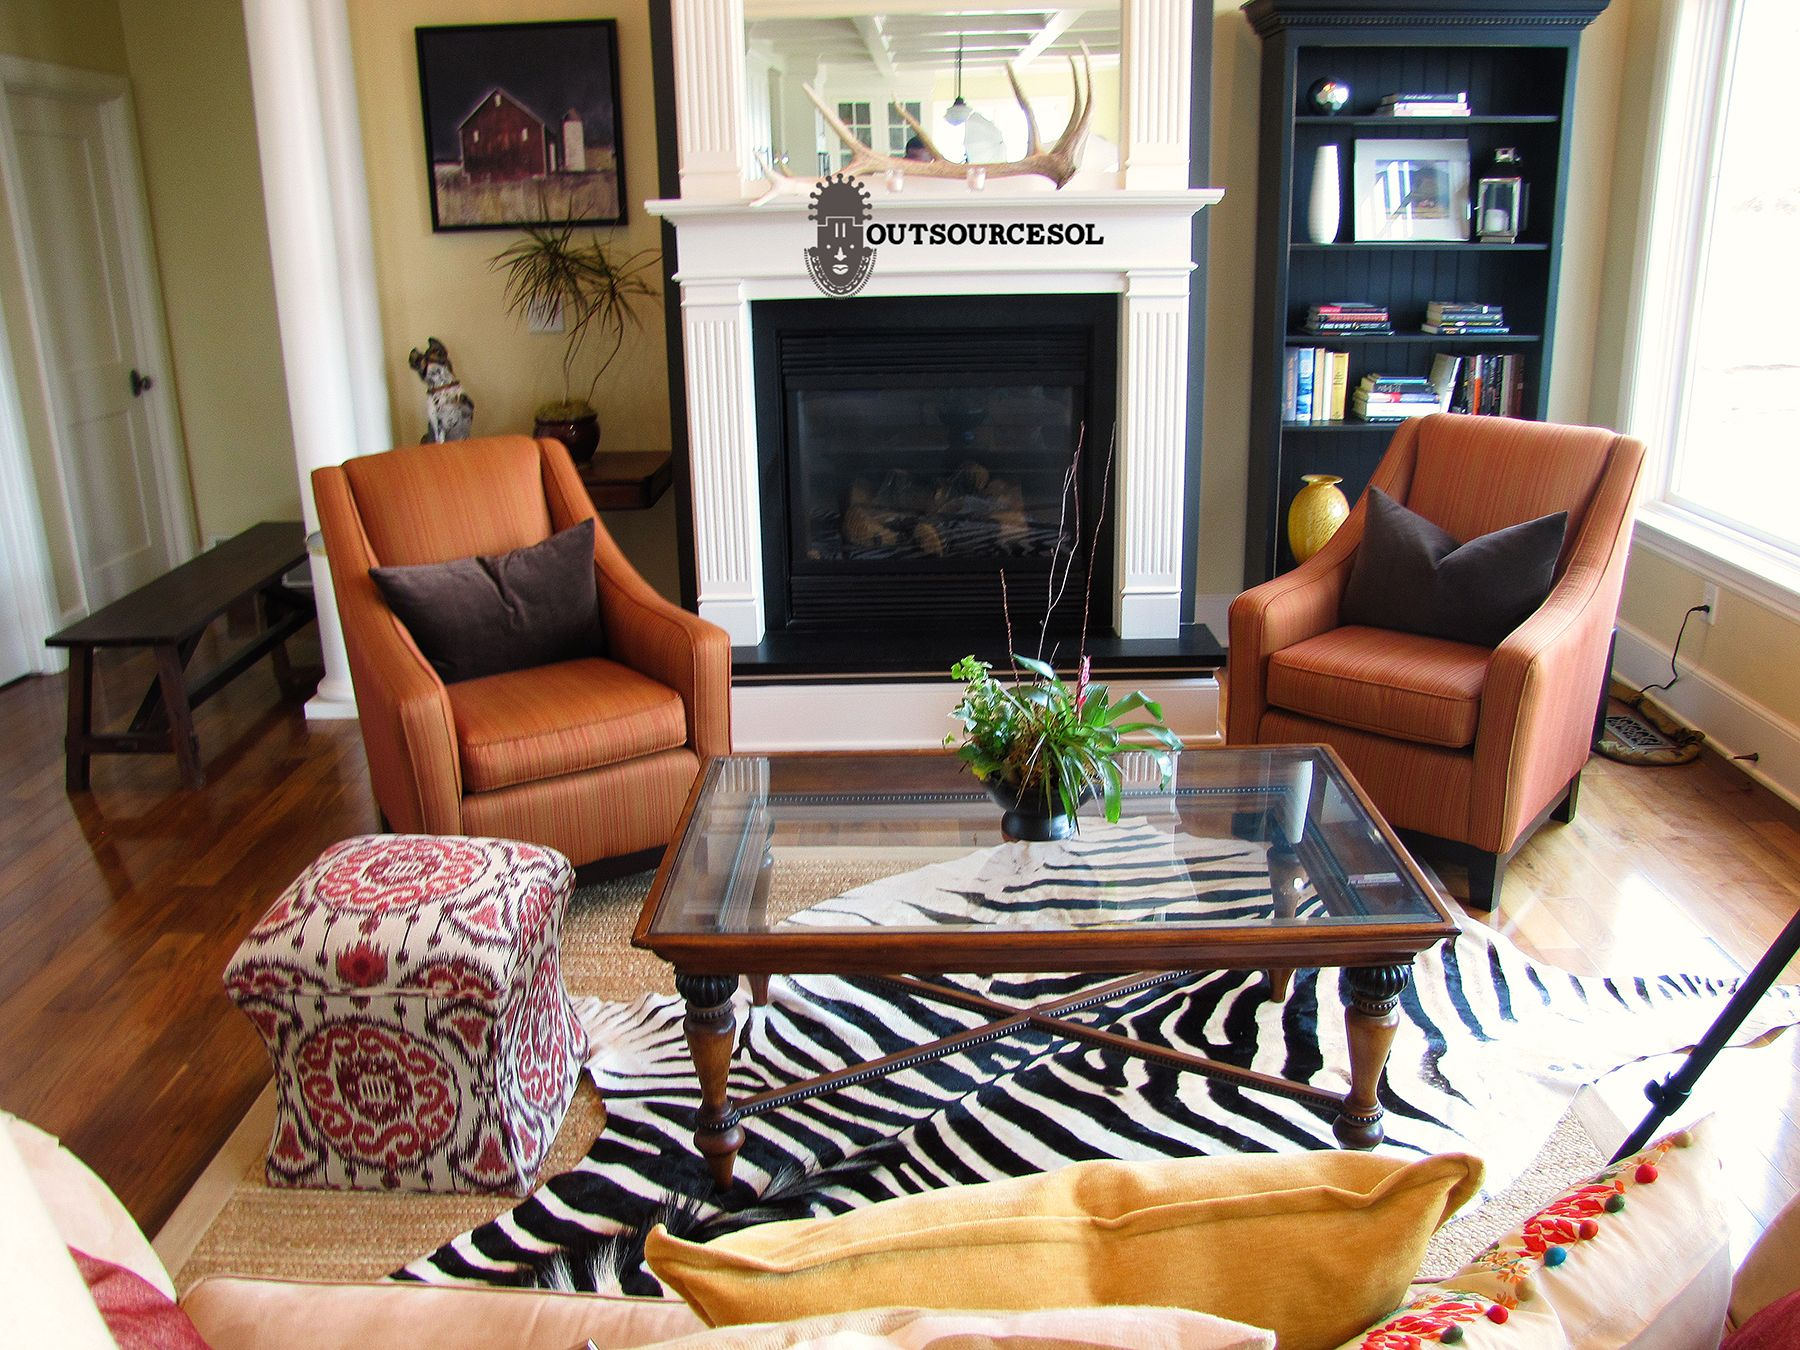 Authentic African Zebra Skin Rug $1650